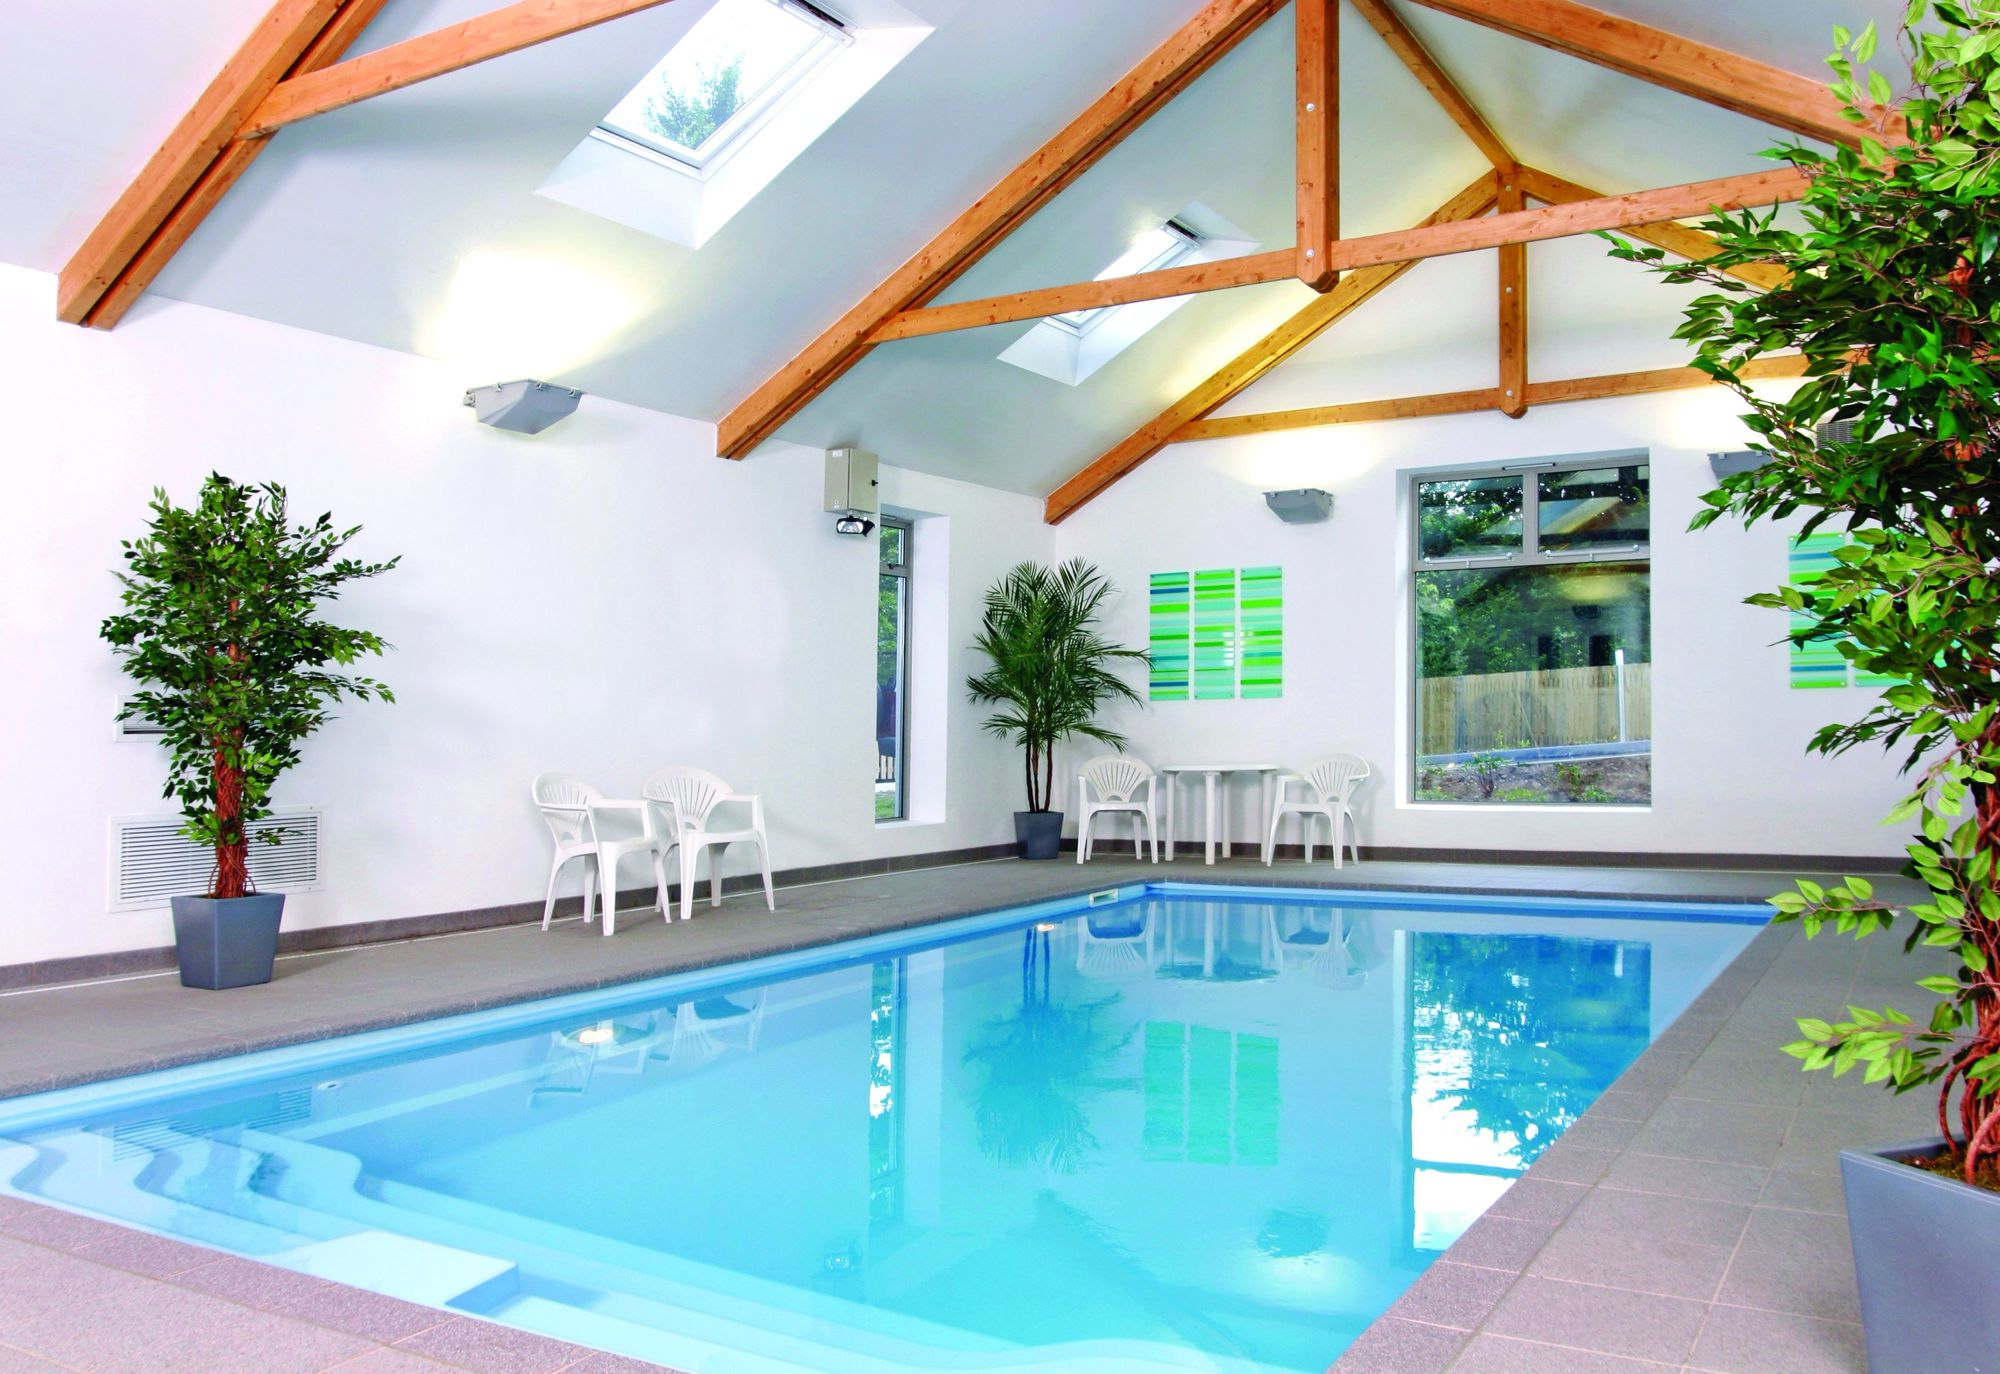 Self-Catering in Truro holidays at Cool Places